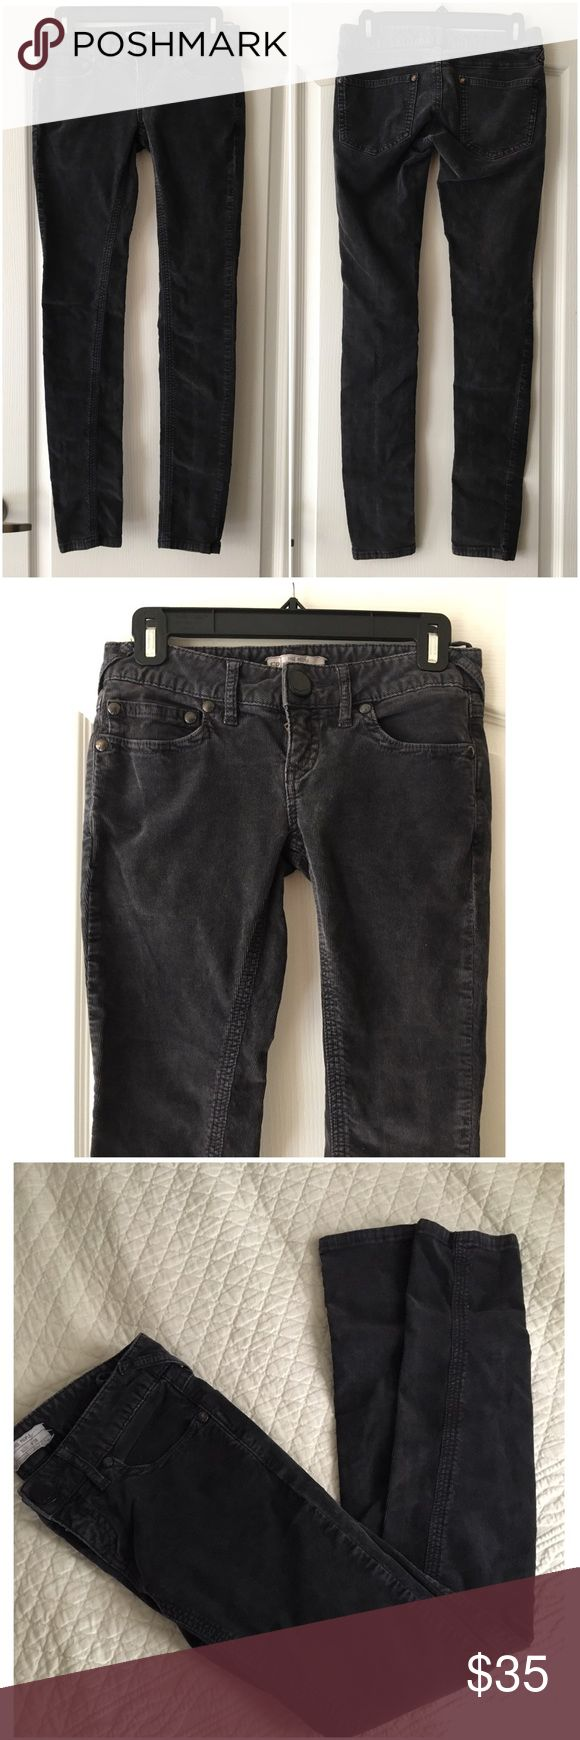 Free People Skinny Grey Stretch Cord pants Jeans Free People   Sz 26  In good used condition  Dark grey, Stretchy corduroy jeans. Free People Jeans Skinny